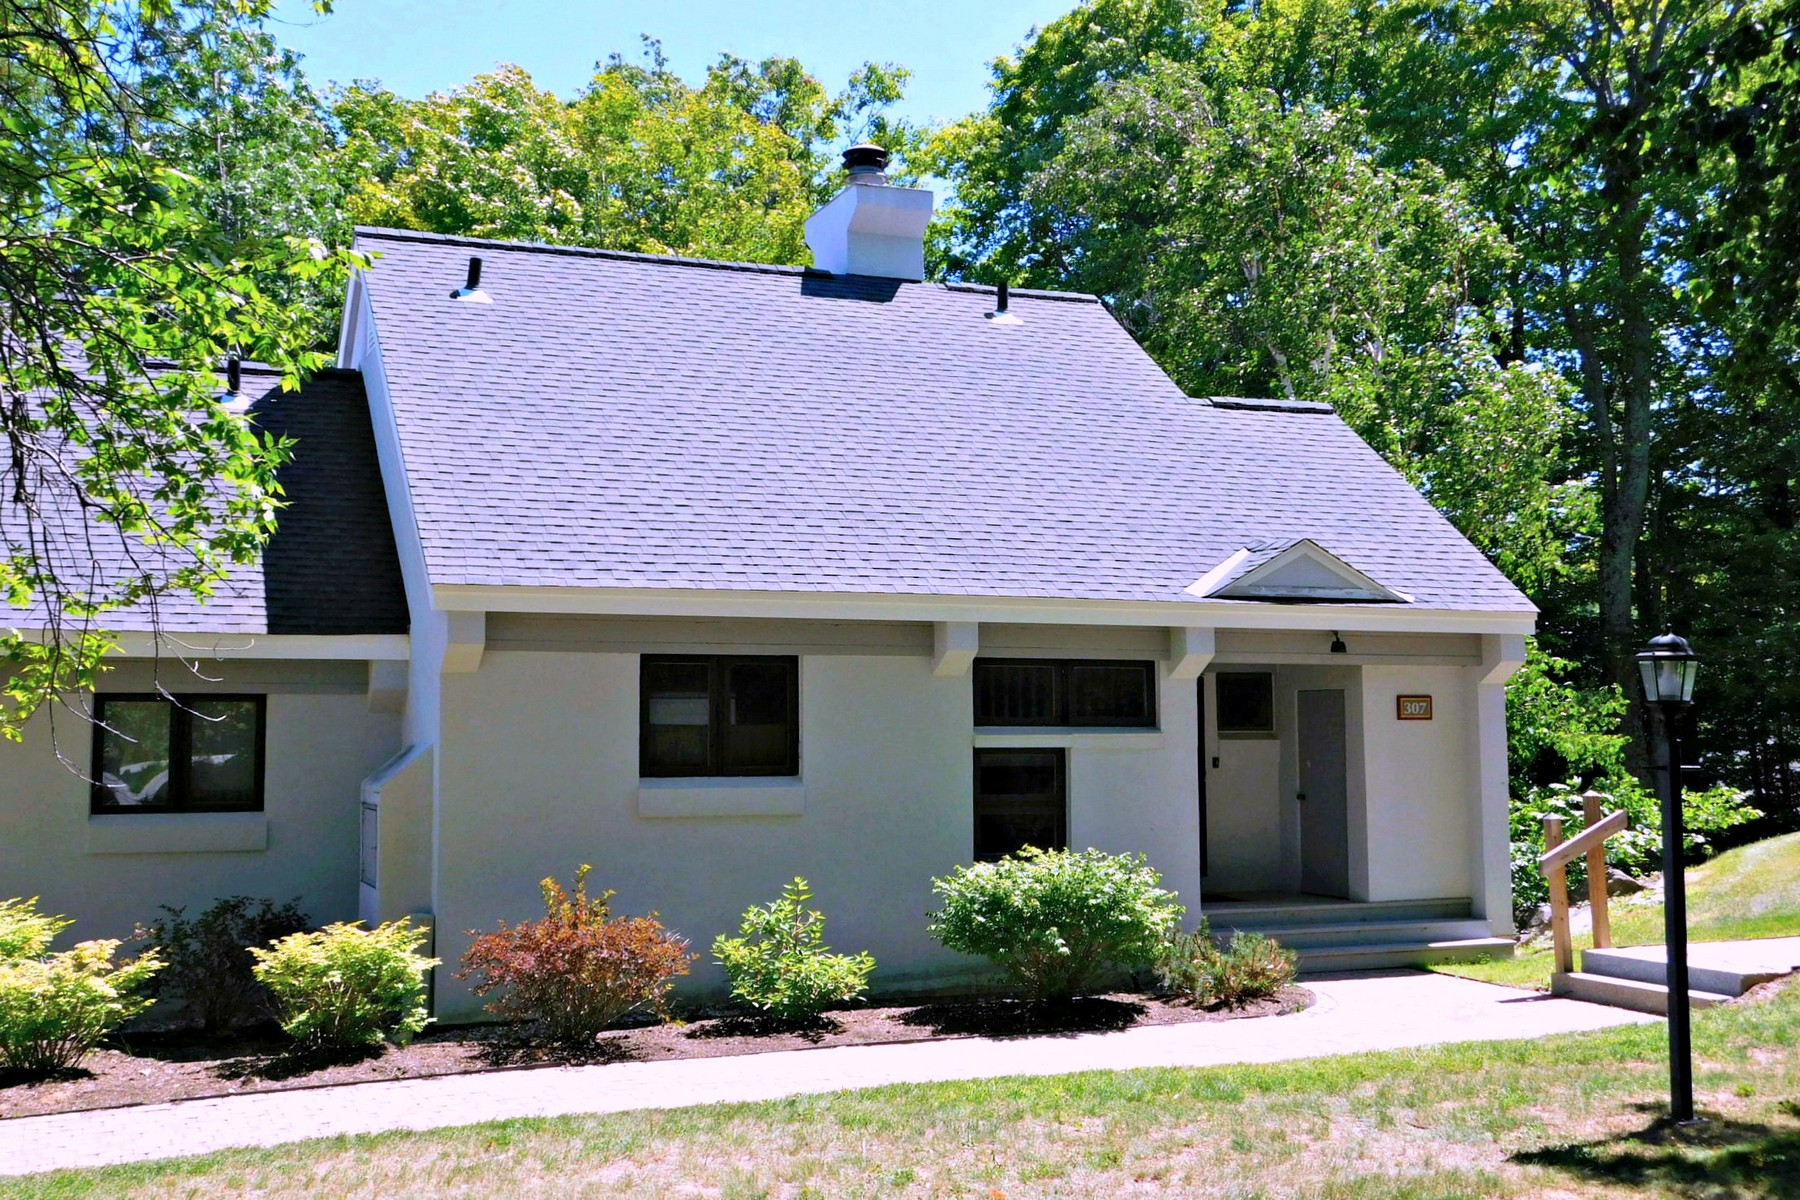 Condominium for Sale at Styles Brook 30 Styles Branch Rd 307 Stratton, Vermont 05155 United States